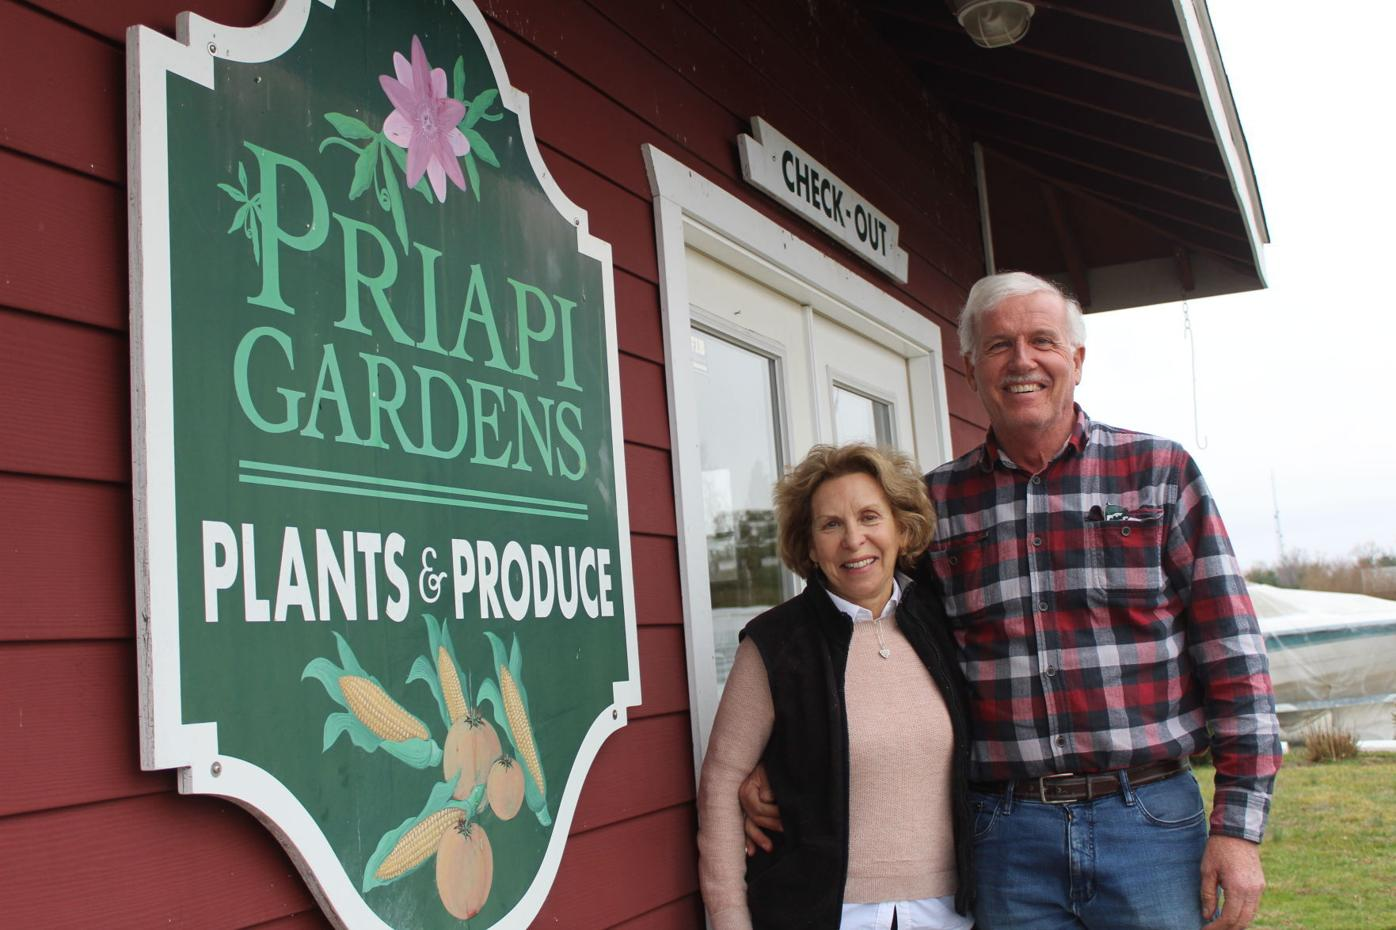 Priapi Gardens ISO vendors for Farmer's Market